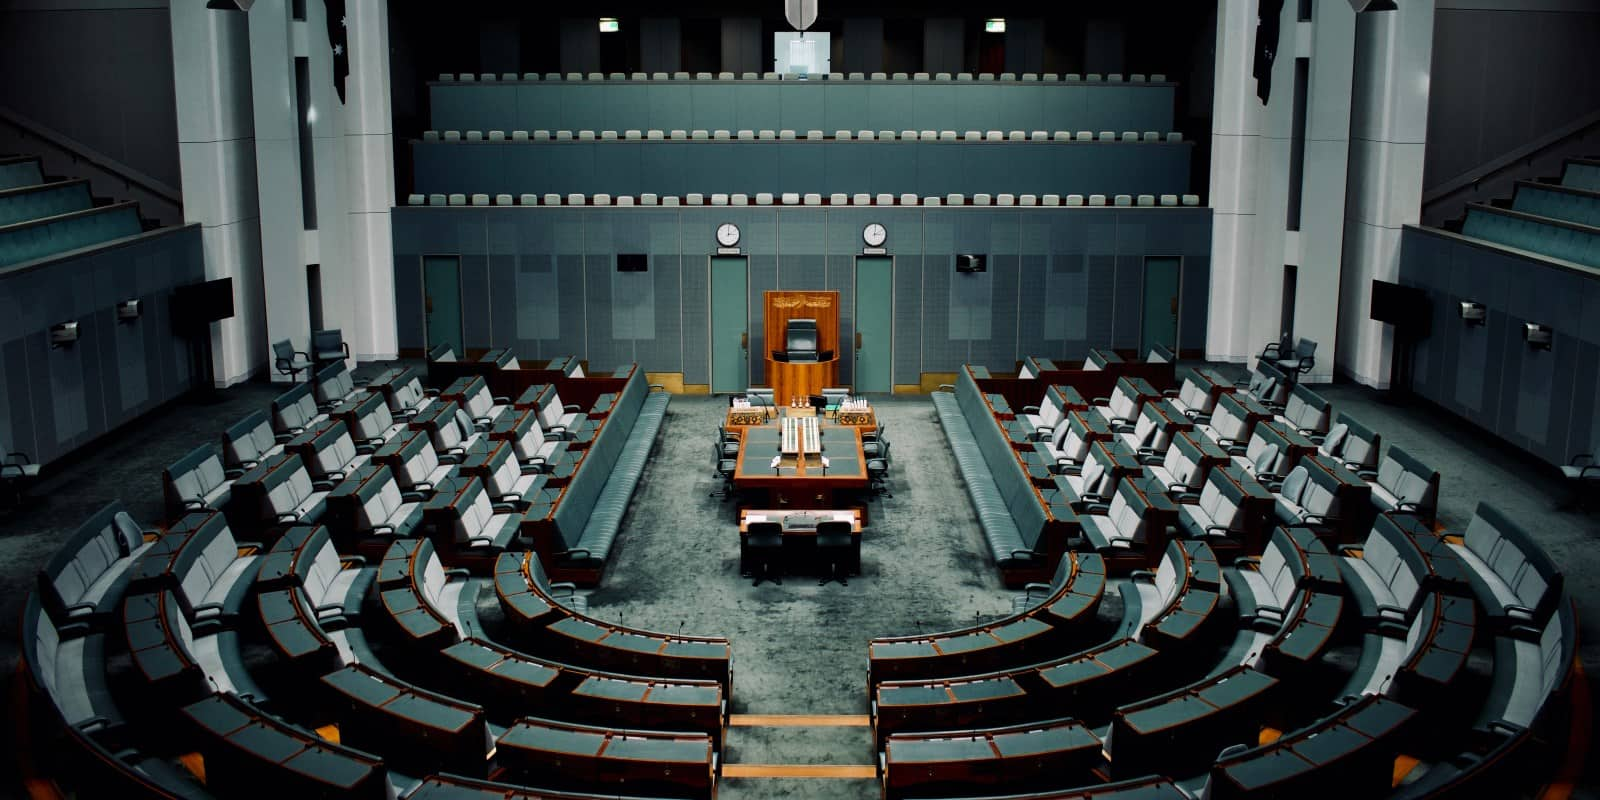 Chamber of the House of Representatives, Government House, Canberra